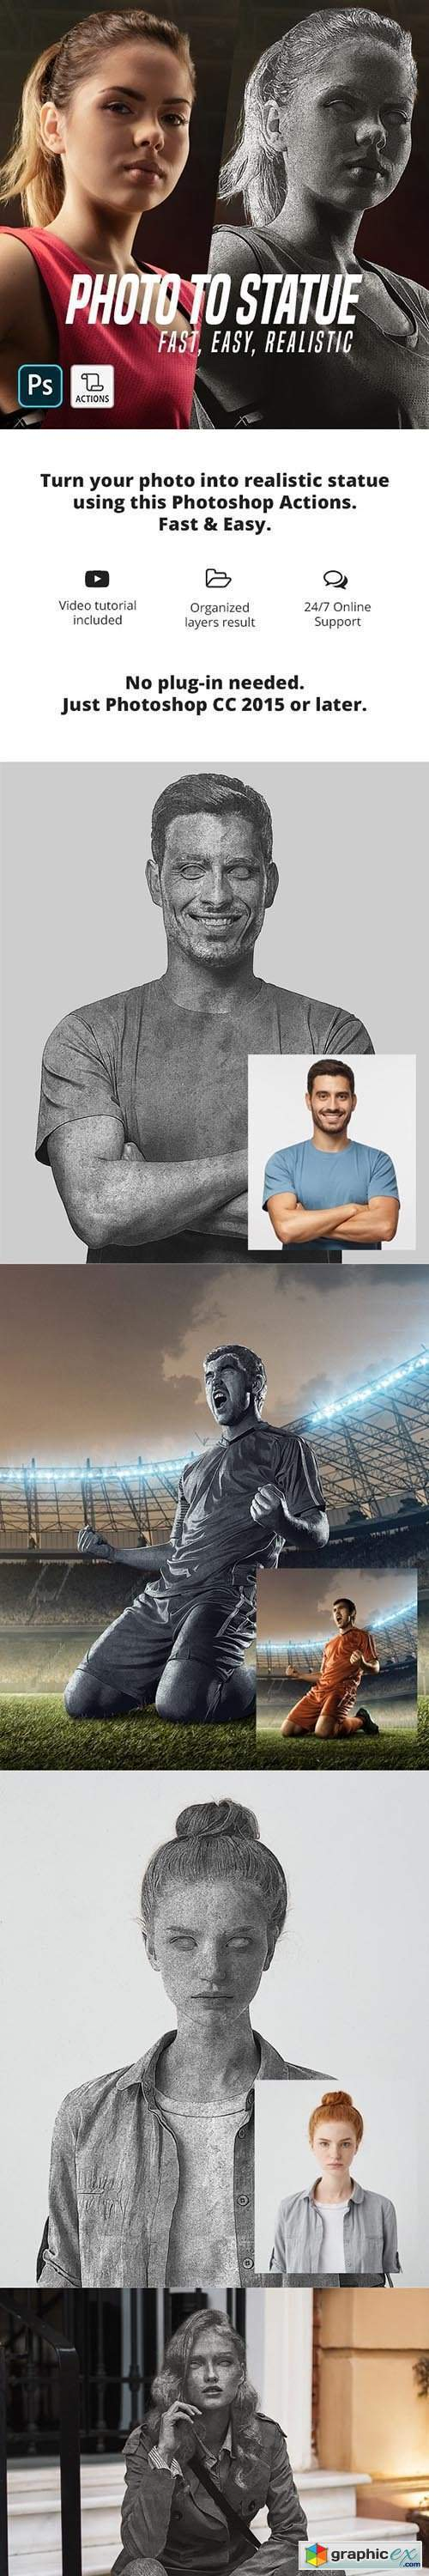 Photo To Statue Photoshop Action